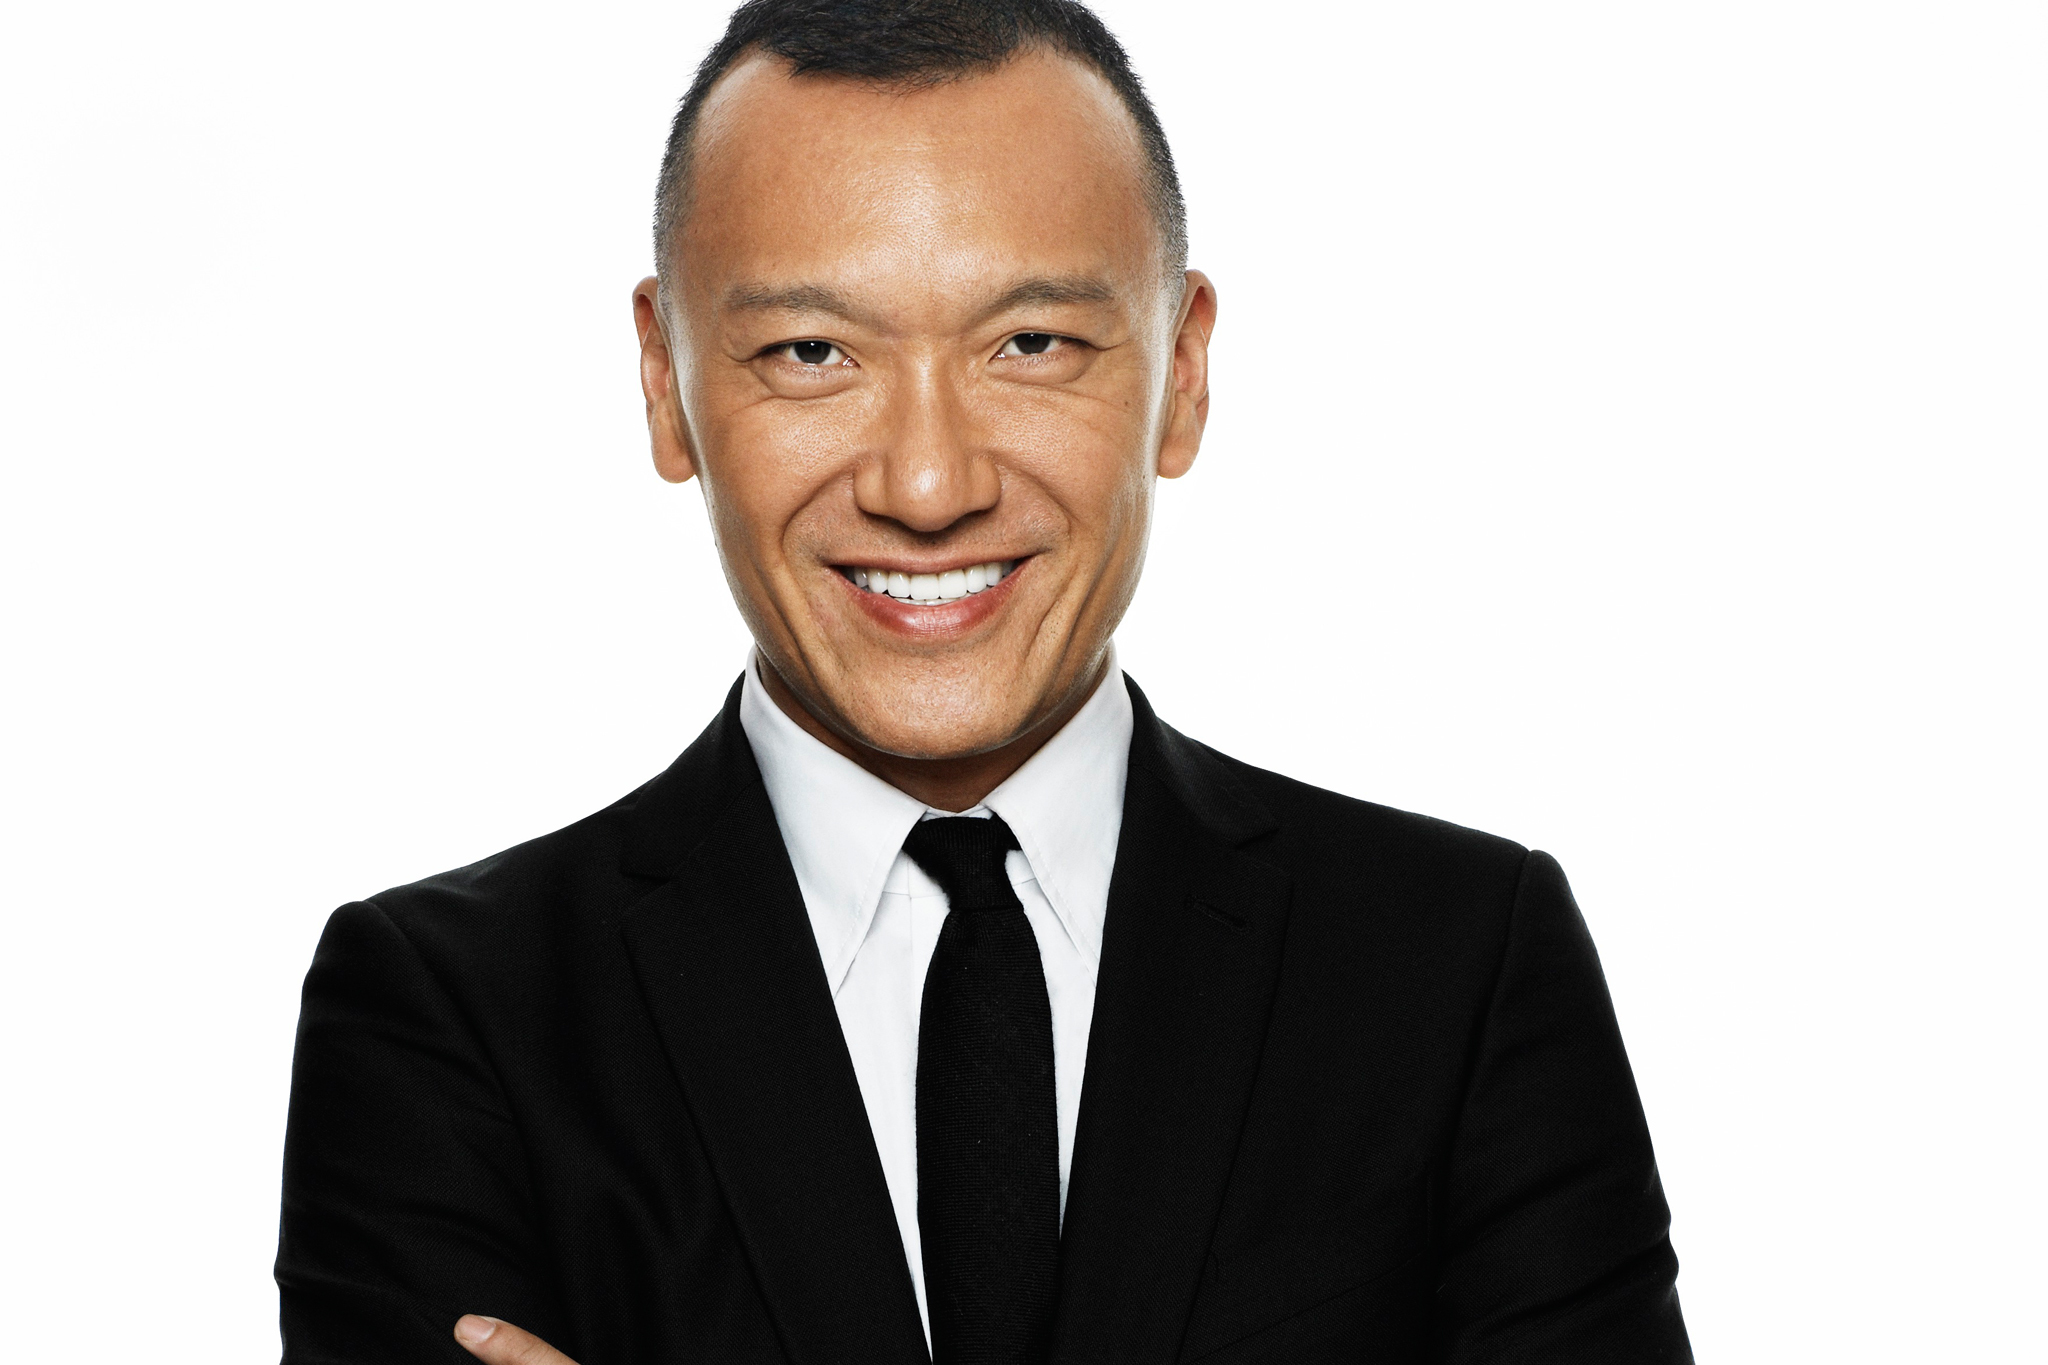 Joe Zee, creative director of Elle and host of All on the Line with Joe Zee